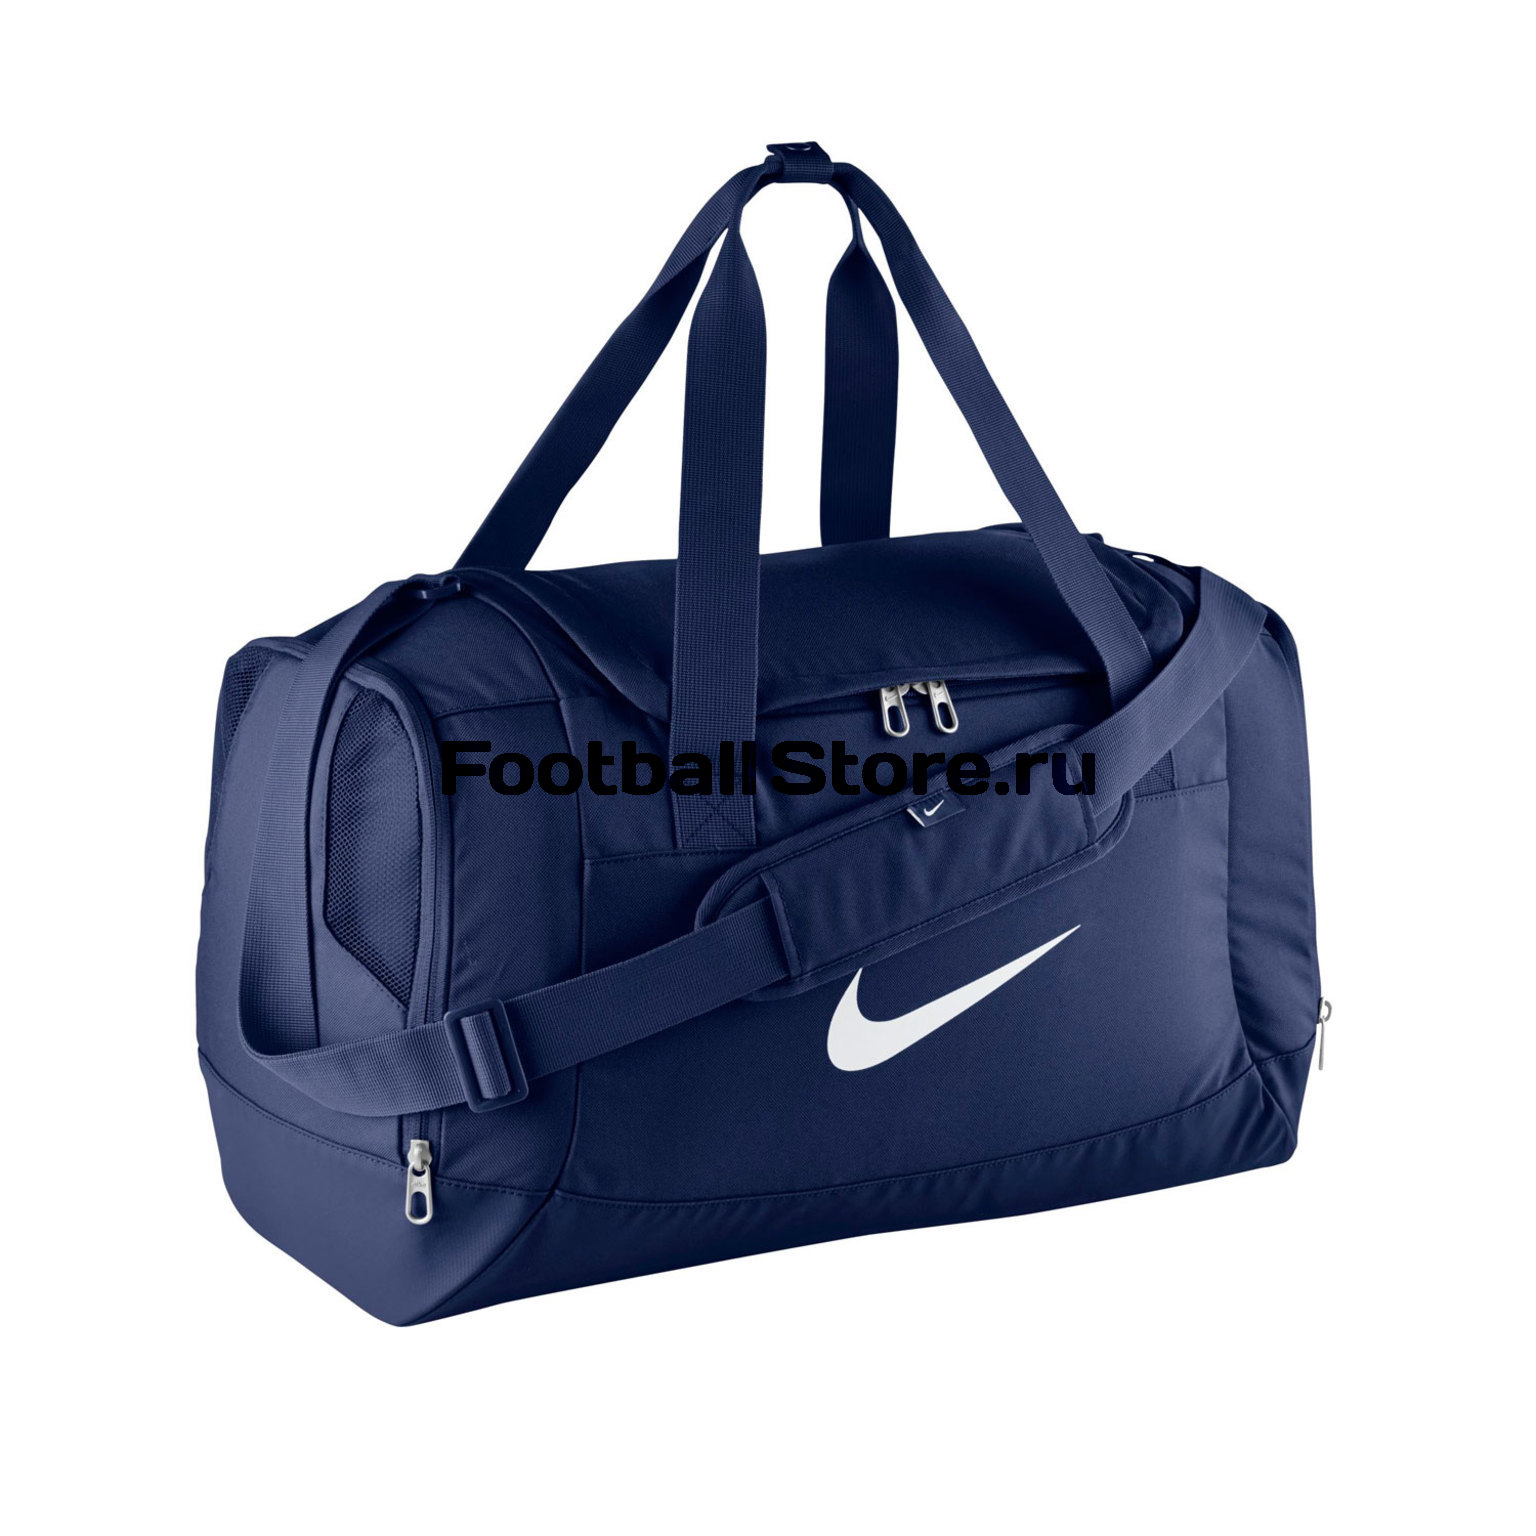 Сумки/Рюкзаки Nike Сумка Nike Club Team Swoosh Duff S BA5194-410 nike nike club team swoosh backpack